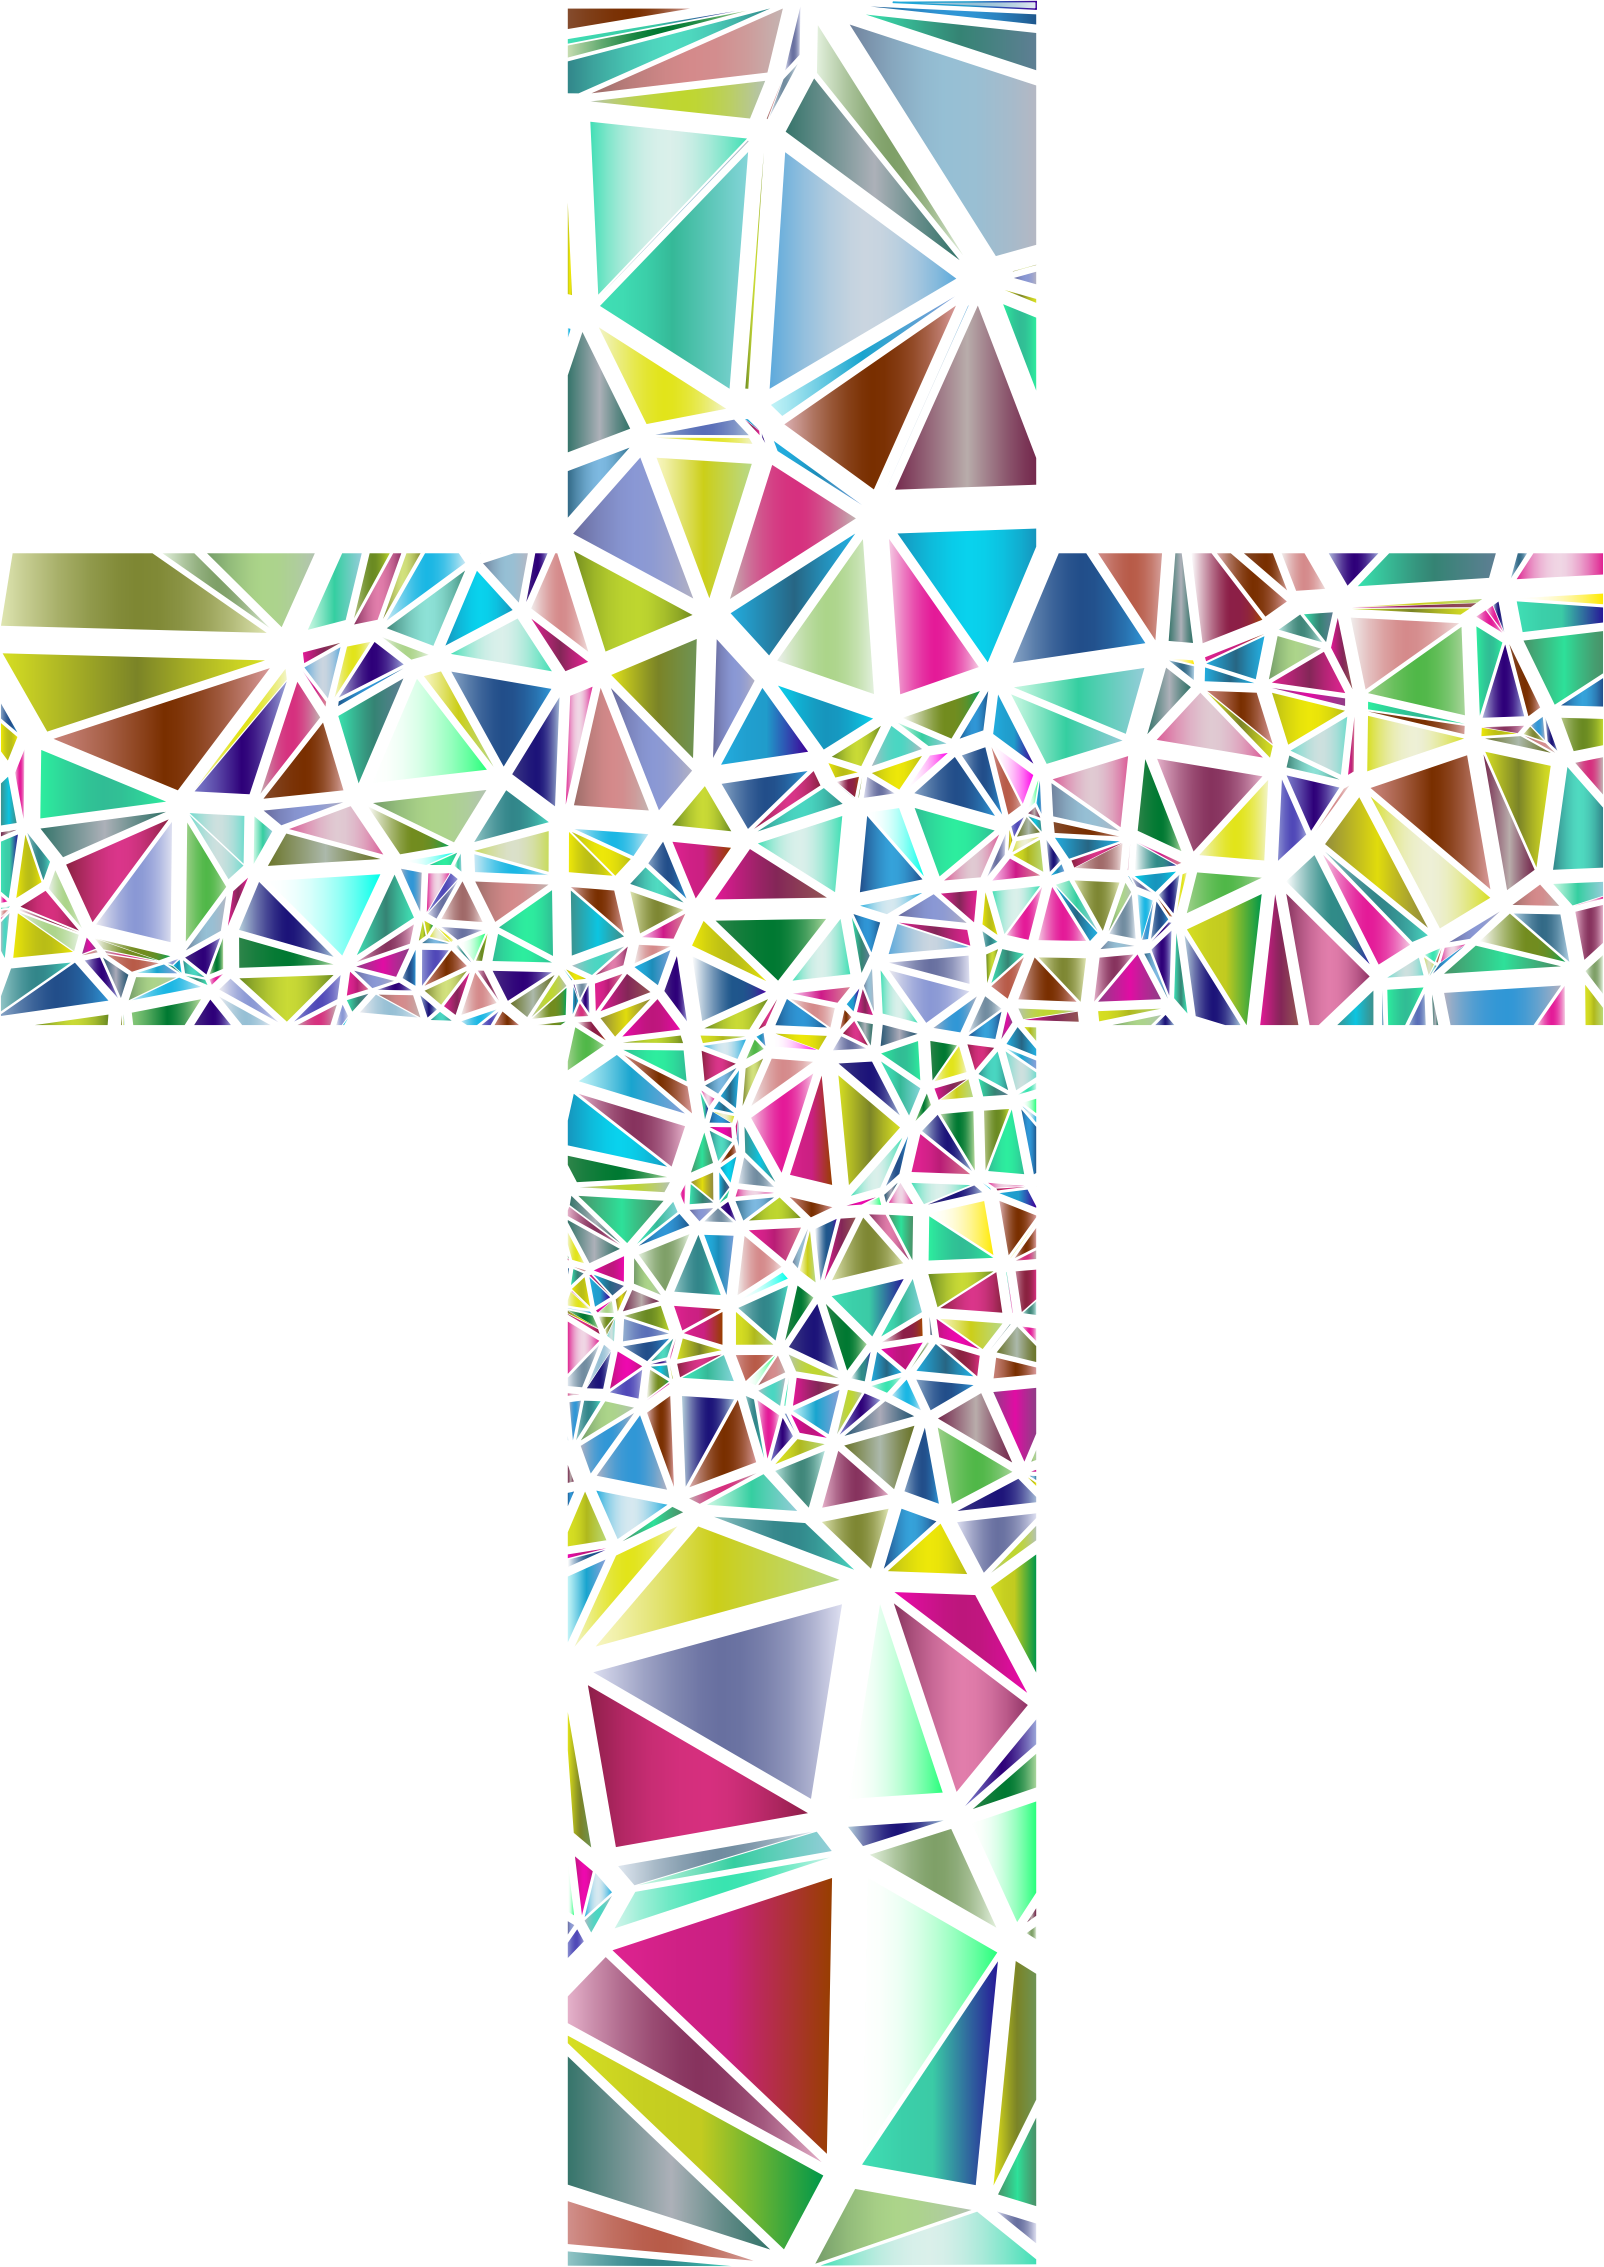 Stained glass cross clipart jpg freeuse library Clipart - Low Poly Stained Glass Cross 3 No Background jpg freeuse library